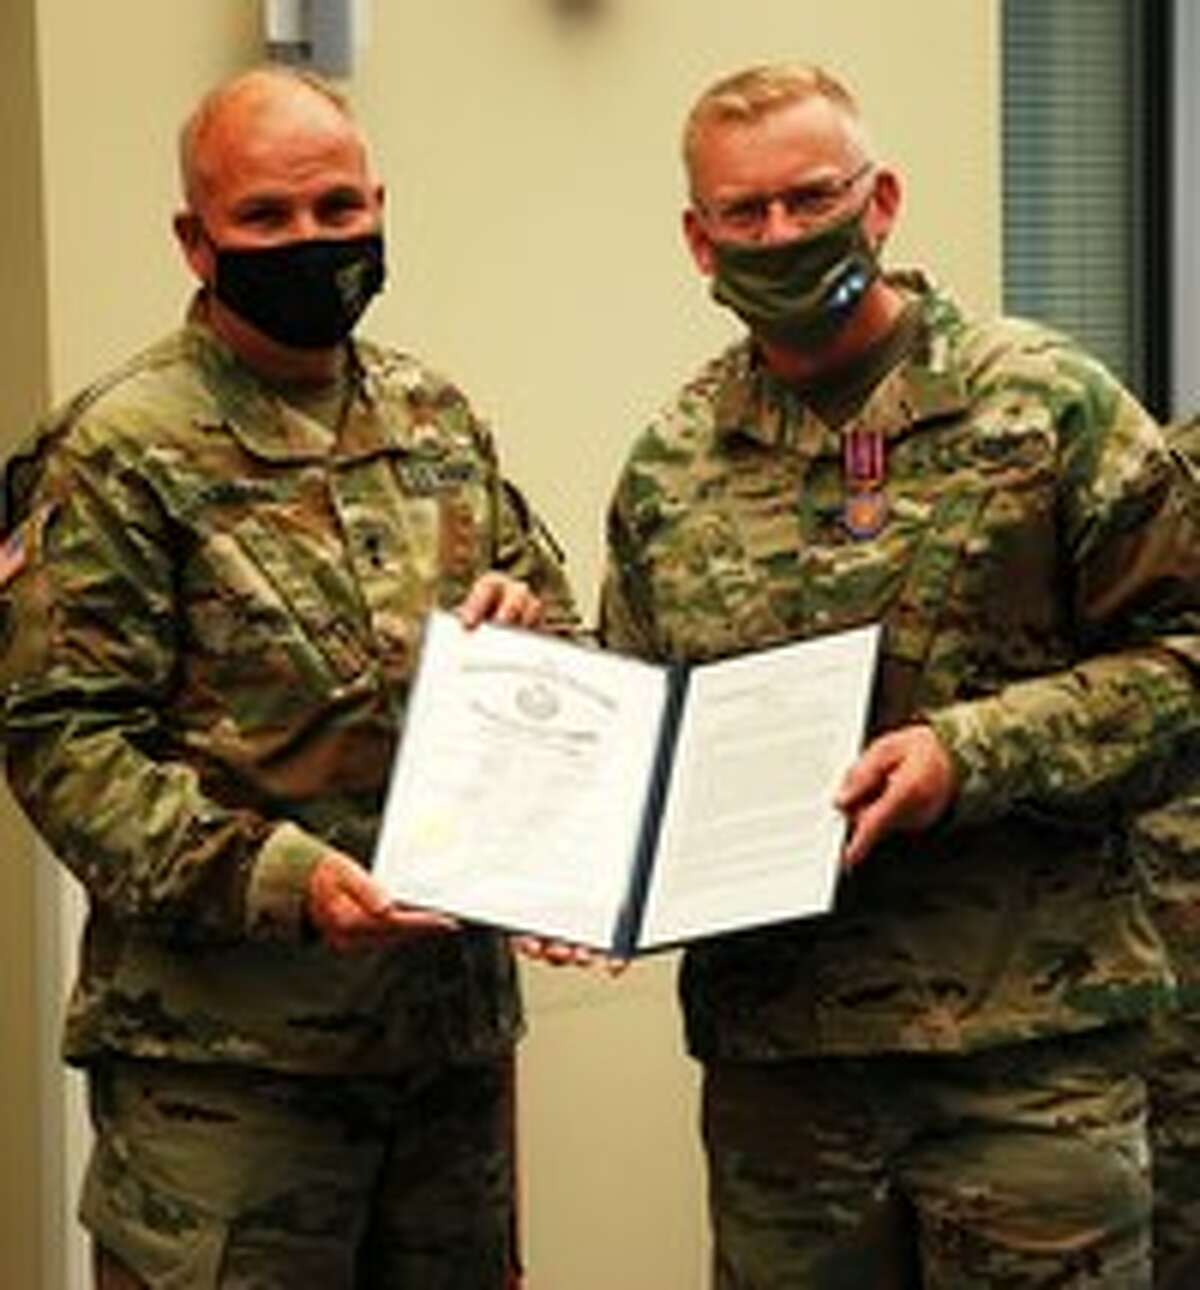 Col. Bob Epp, right, receives a New York State Conspicuous Service Medal from Maj. Gen. Ray Shields, the state adjutant general, in Latham.